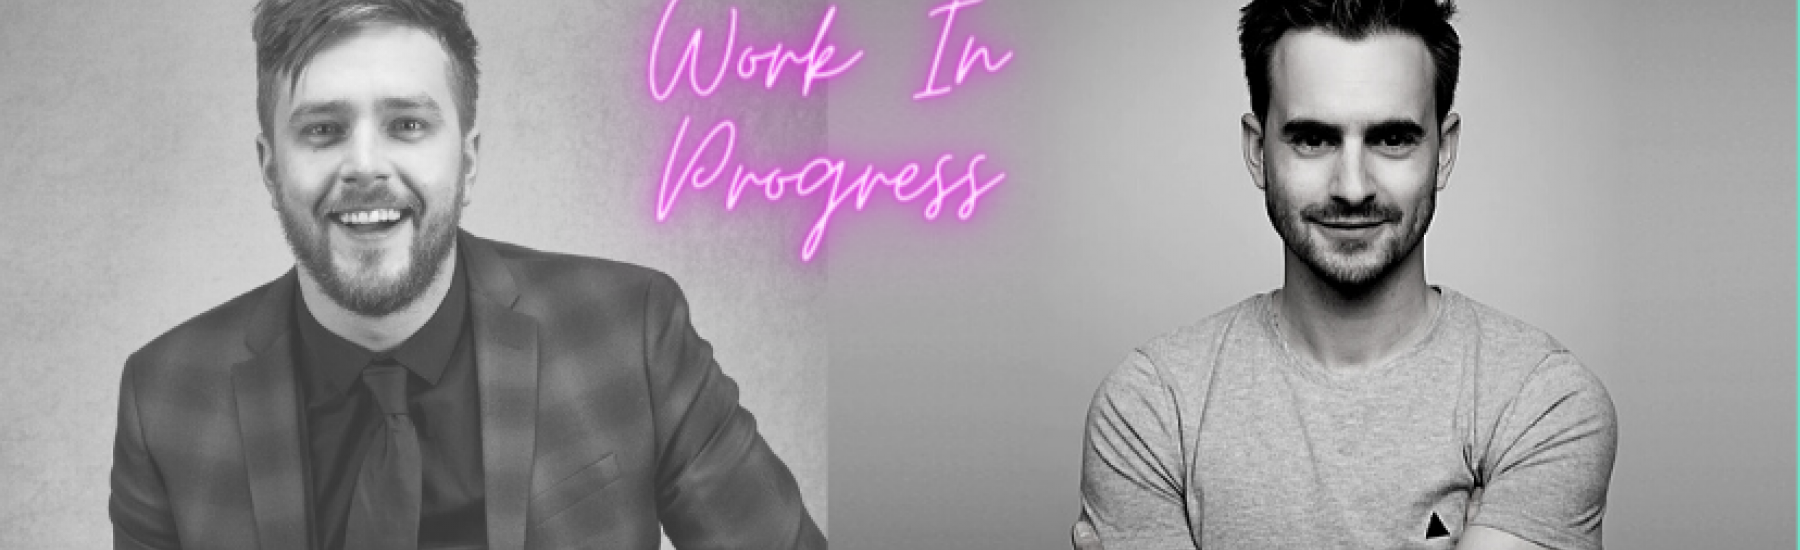 Iain Stirling & Luke Kempner - Work in Progress